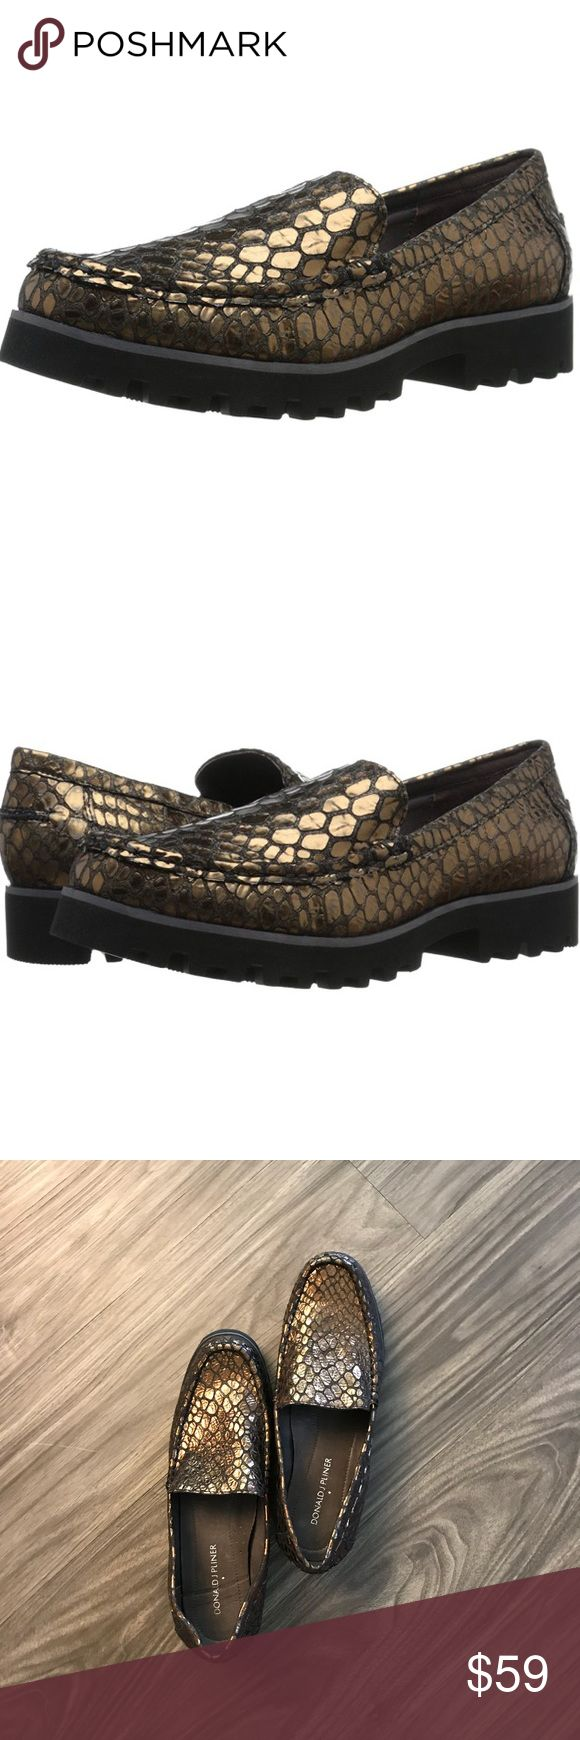 Donald J Pliner Rio2 Loafer This trend-right loafer is made for everyday wear. The RIO slip-on is detailed with metallic pebble texture that will make any look pop. The padded footbed offers all day comfort. 100% Leather. Rubber sole. Upper is antique metallic pebble print leather. Full ethylene vinyl acetate unit bottom outsole. Donald J. Pliner Shoes Flats & Loafers